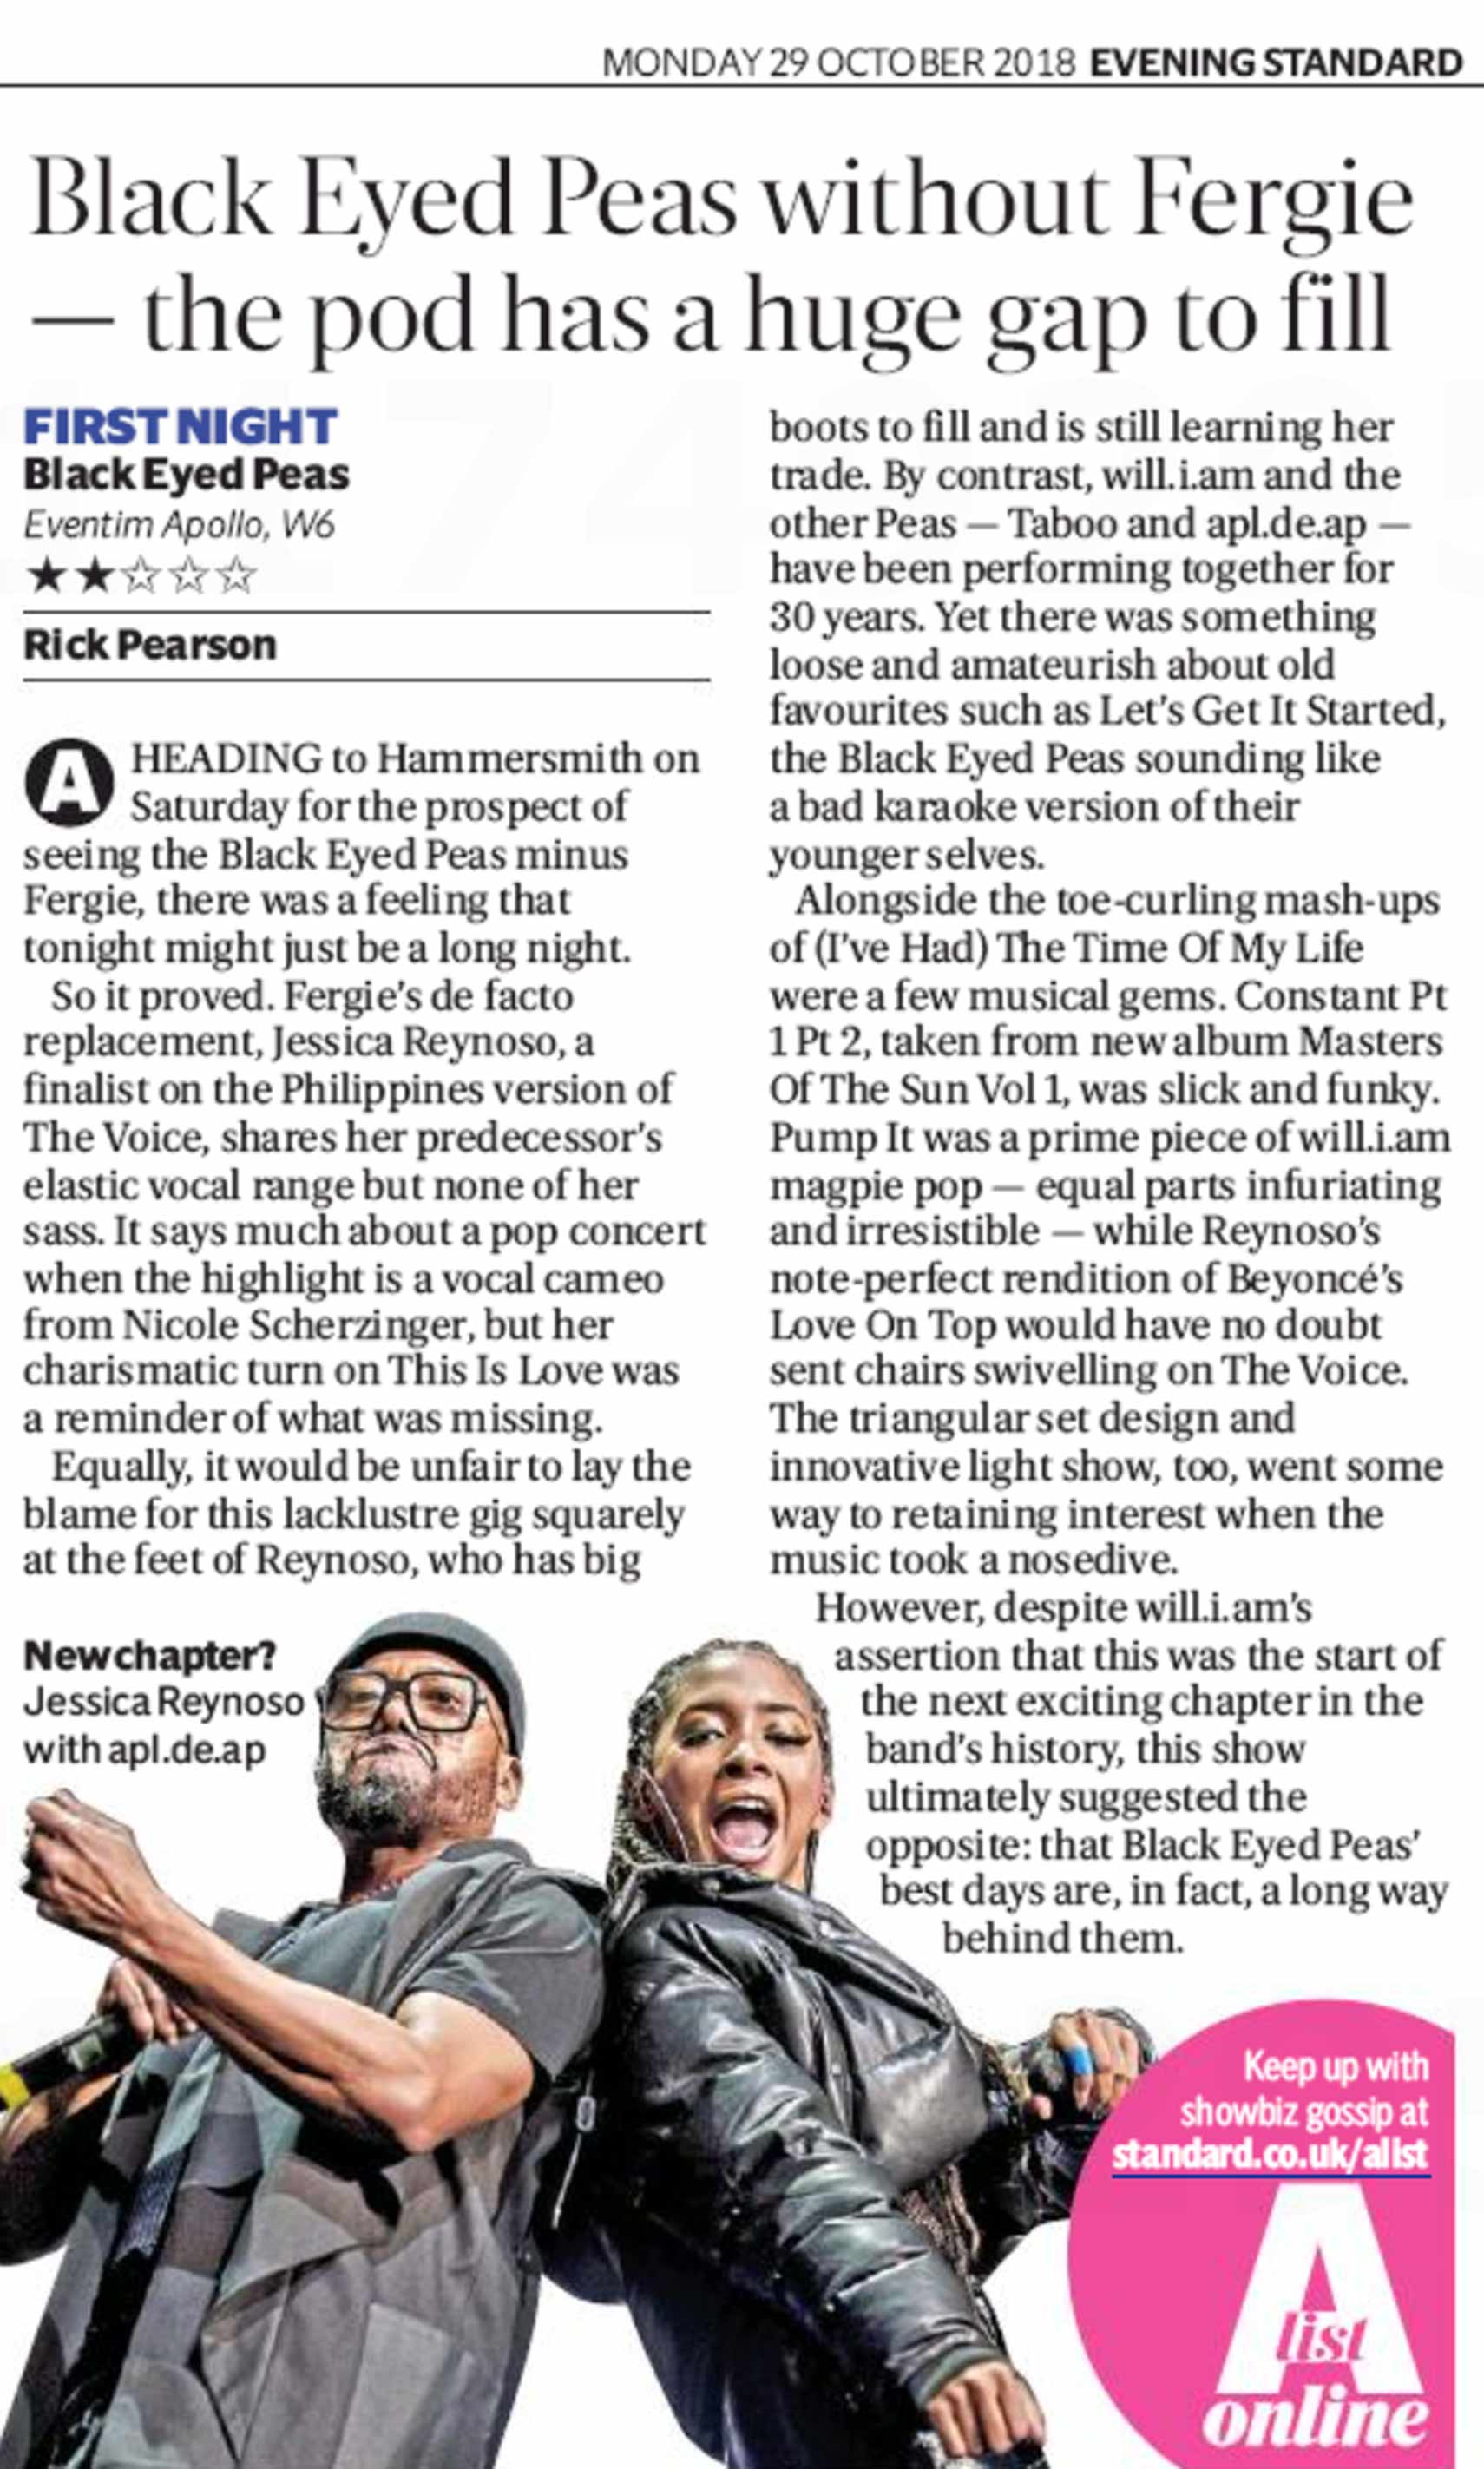 Black-Eyed-Peas-Evening-Standard-review-upload